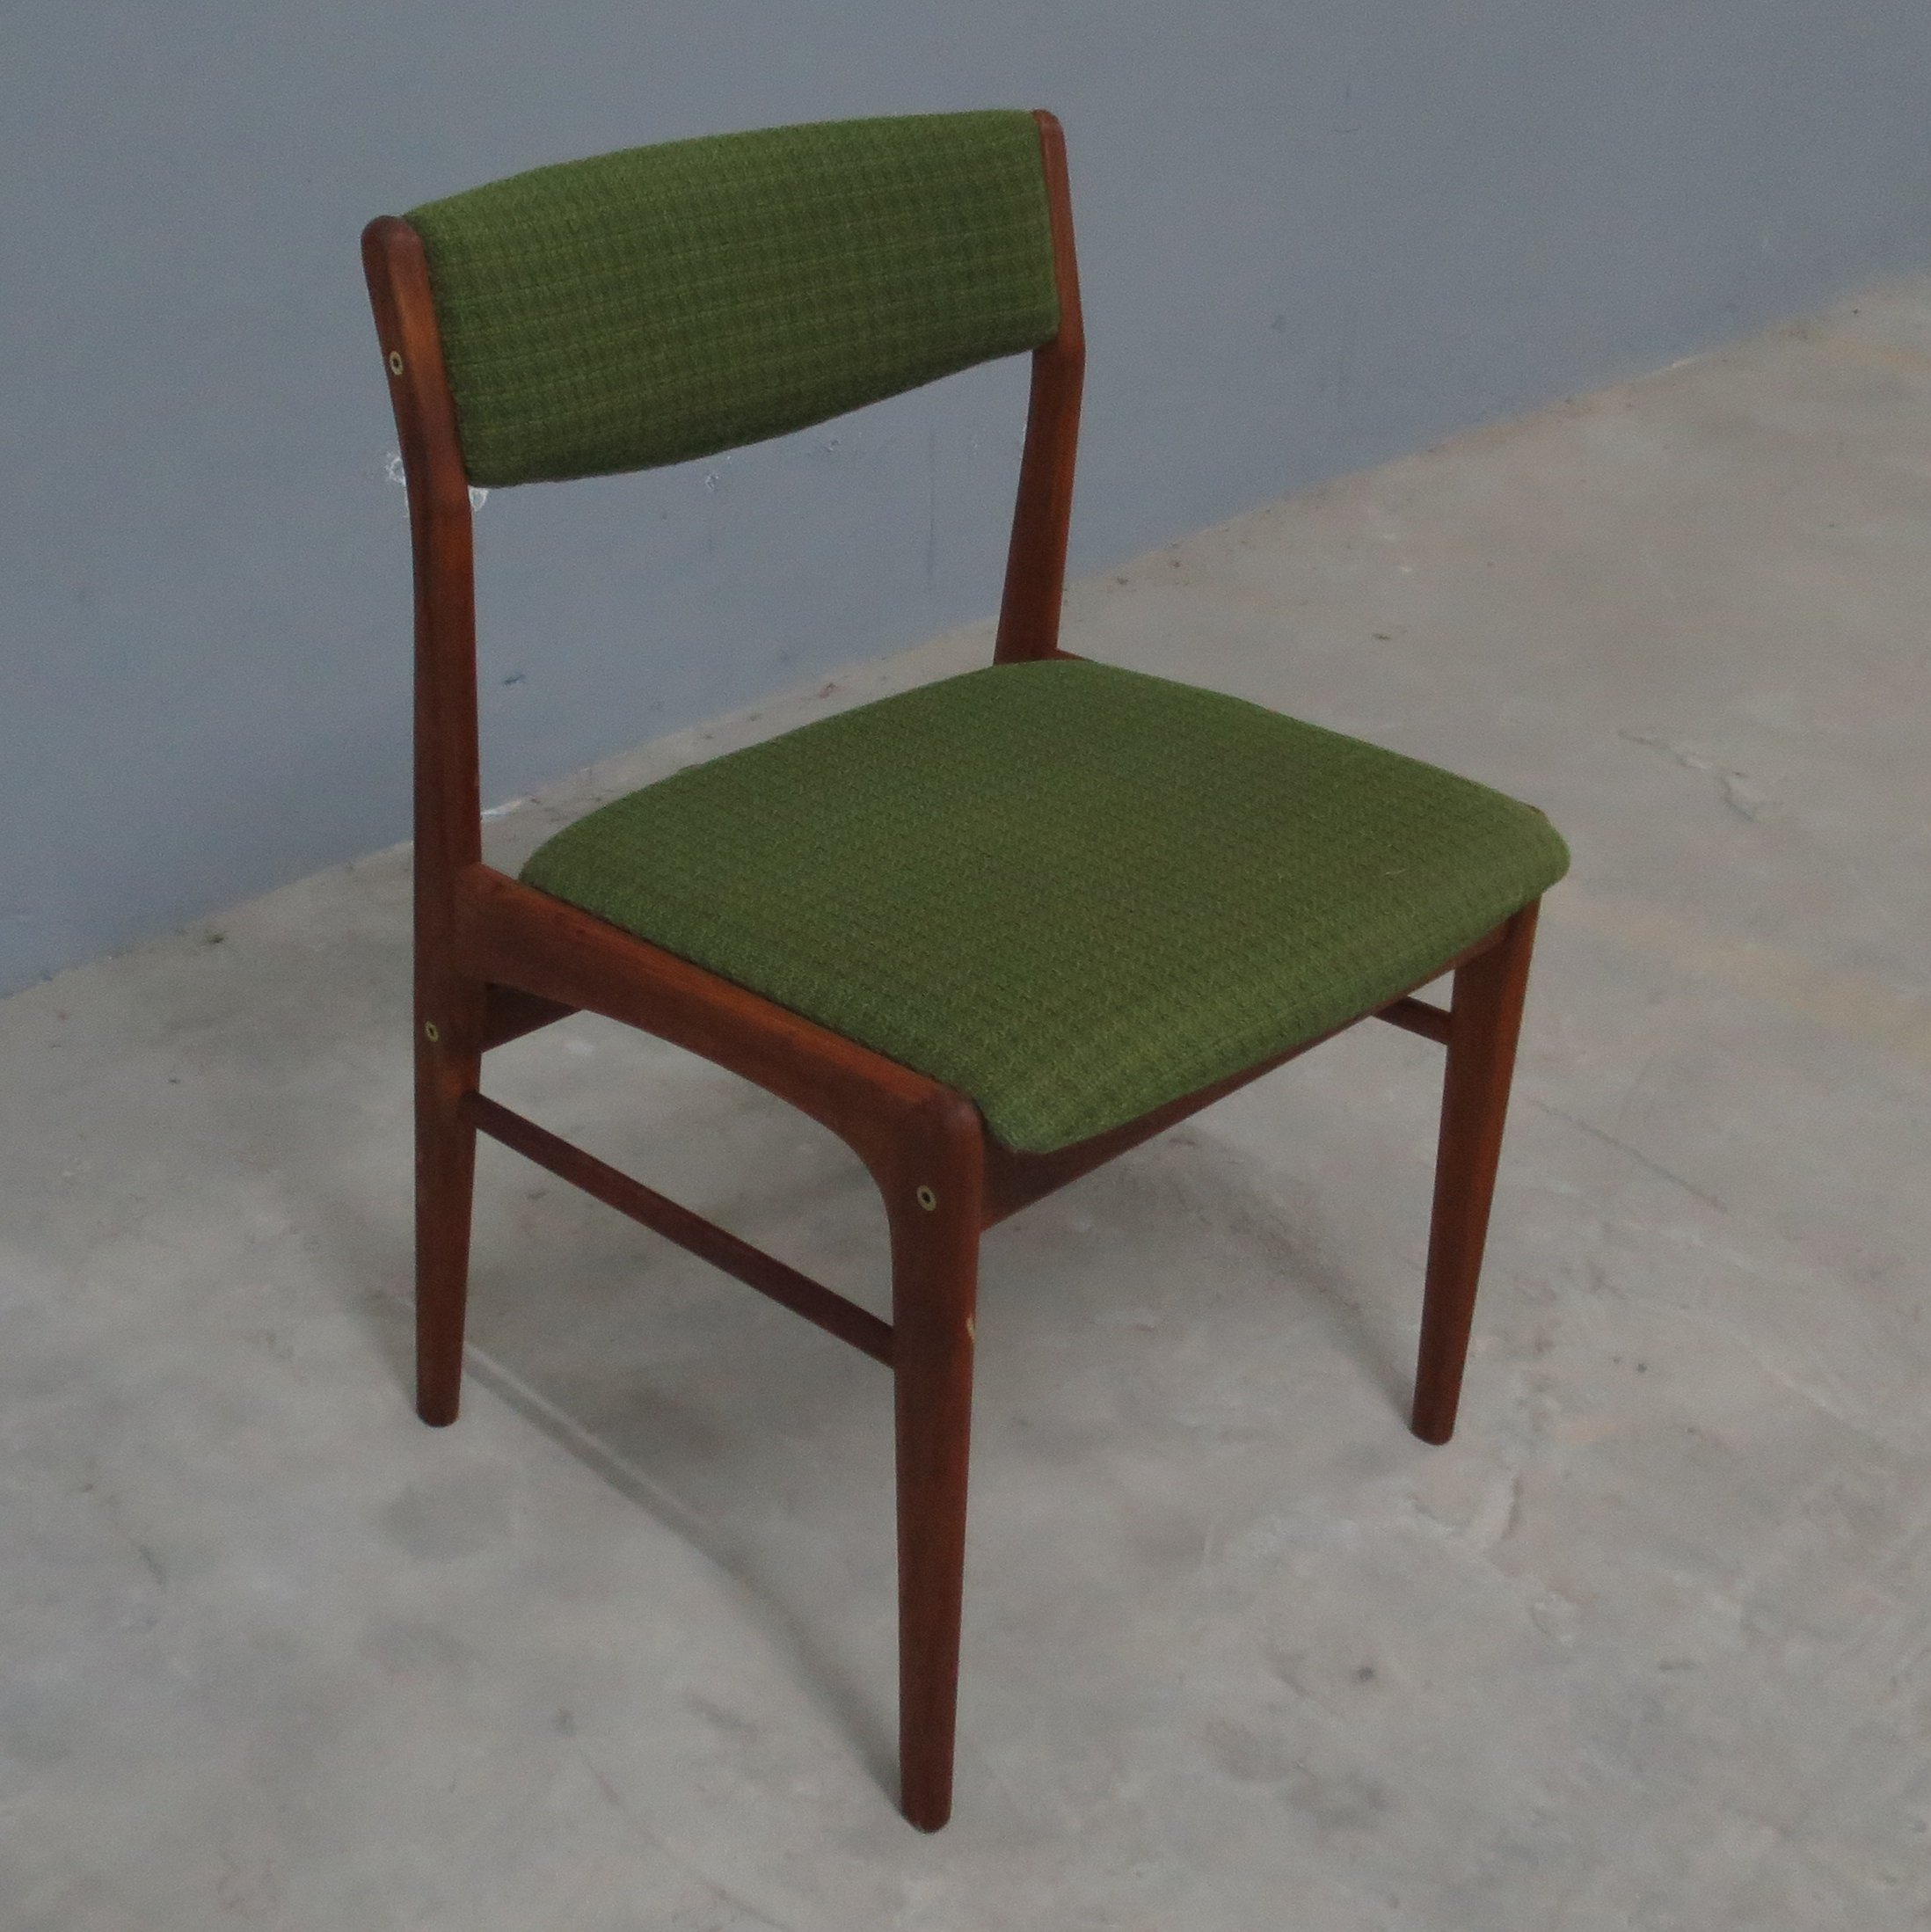 Vintage Scandinavian Danish Teak Dining Room Chair 1960s 127817